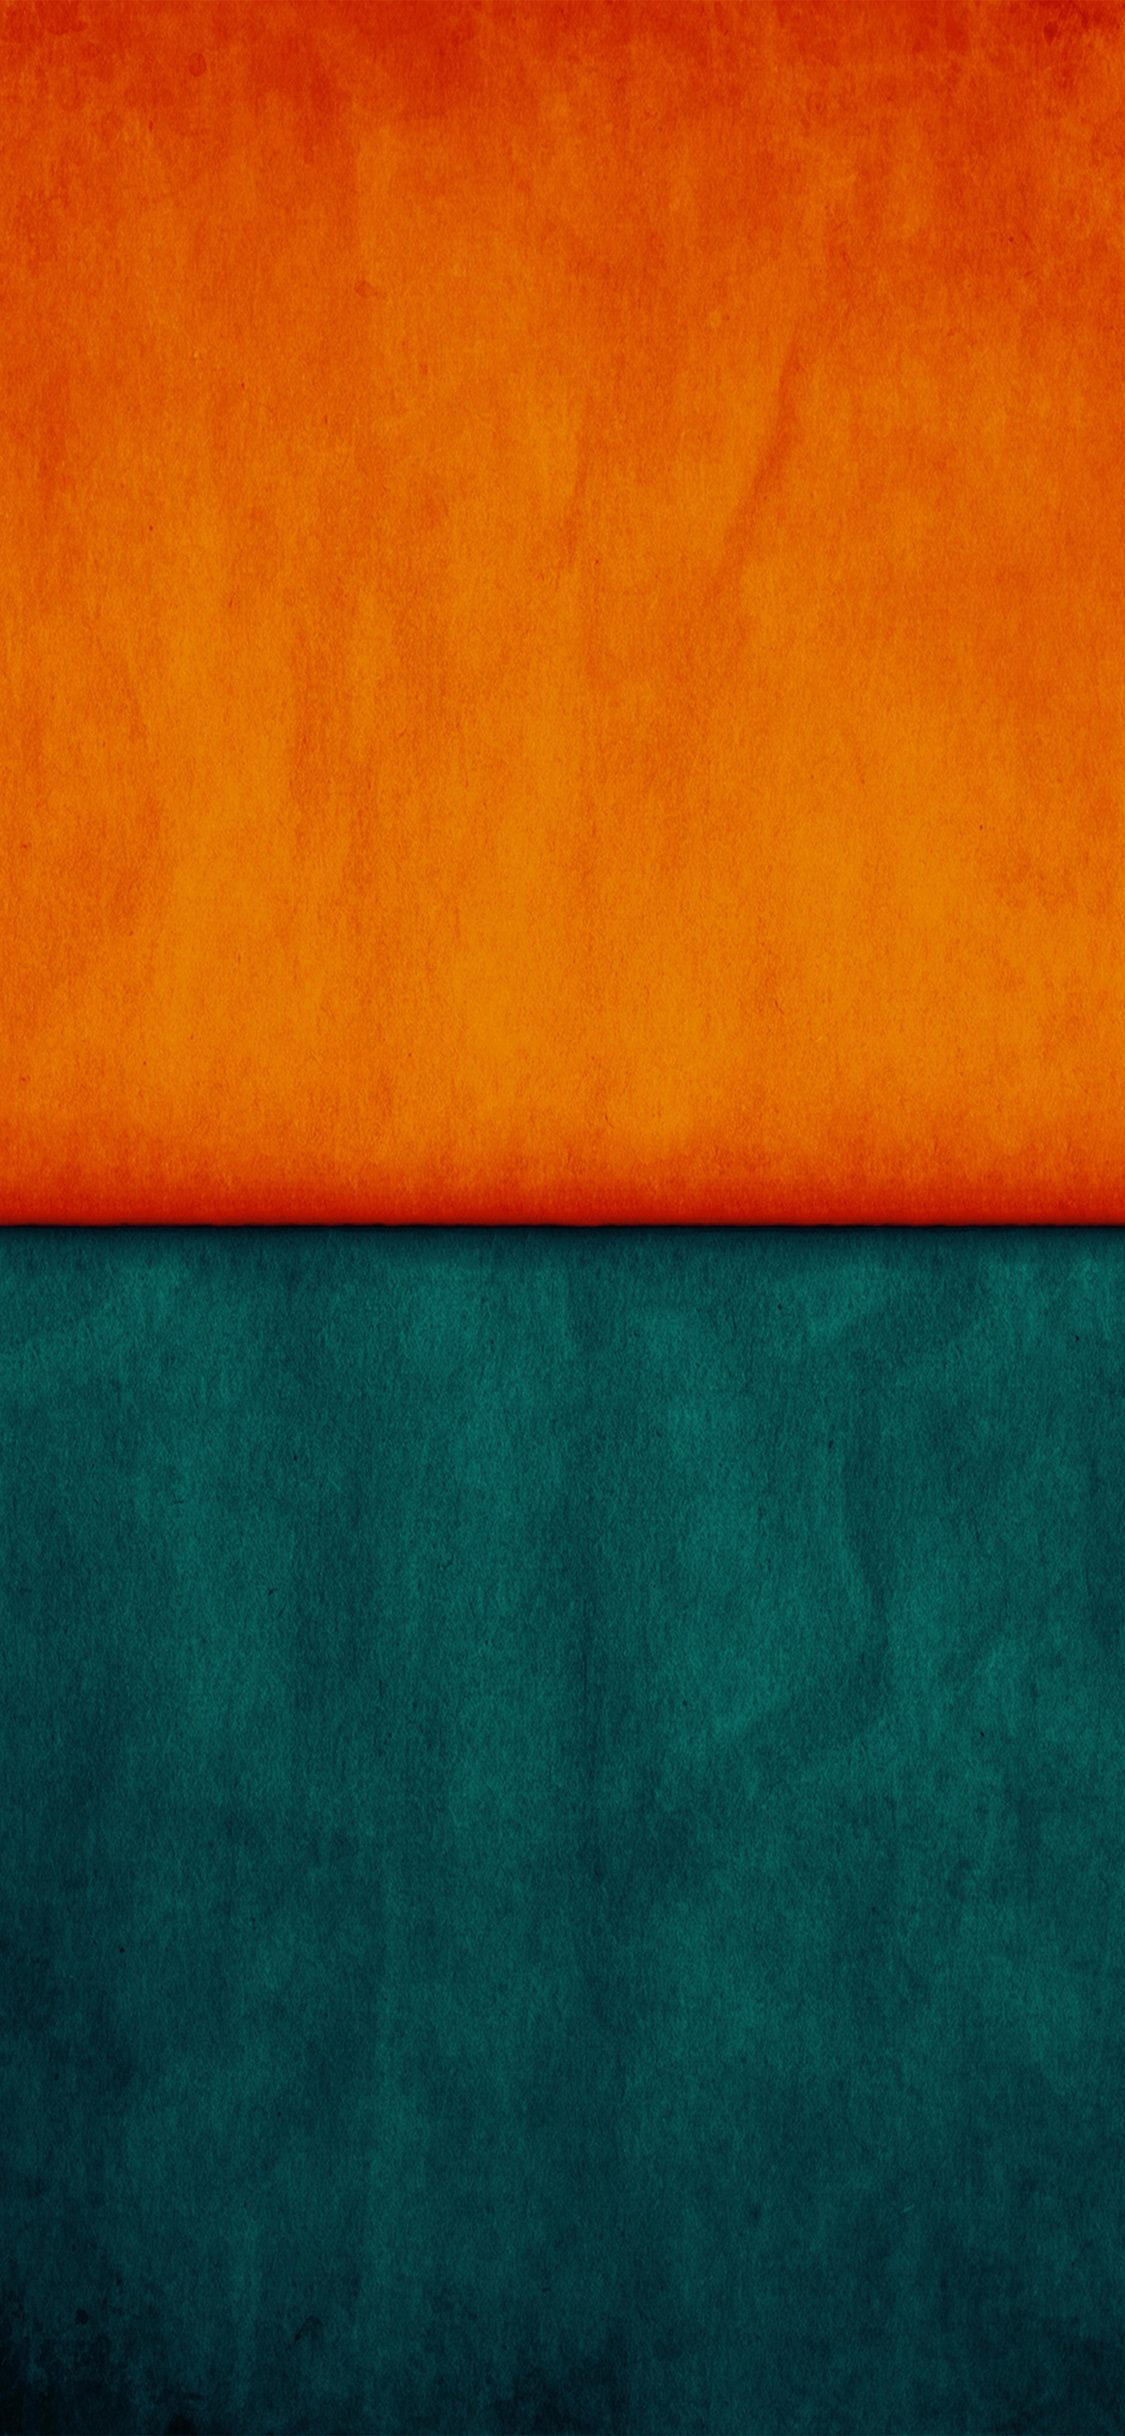 vx27-orange-blue-pattern-background-wallpaper